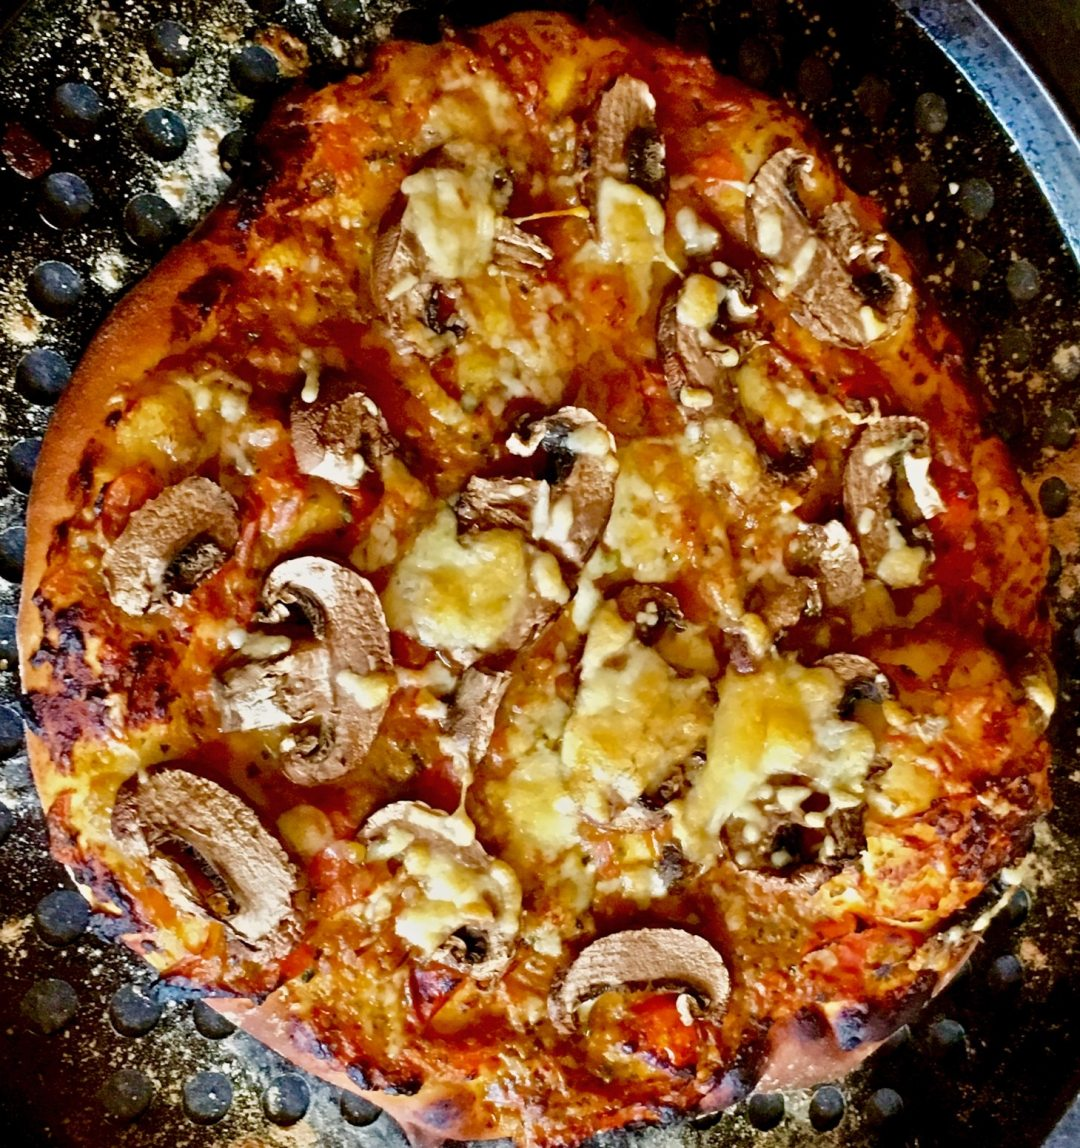 My Pizza Recipe - The Pizza Cooked and delicious